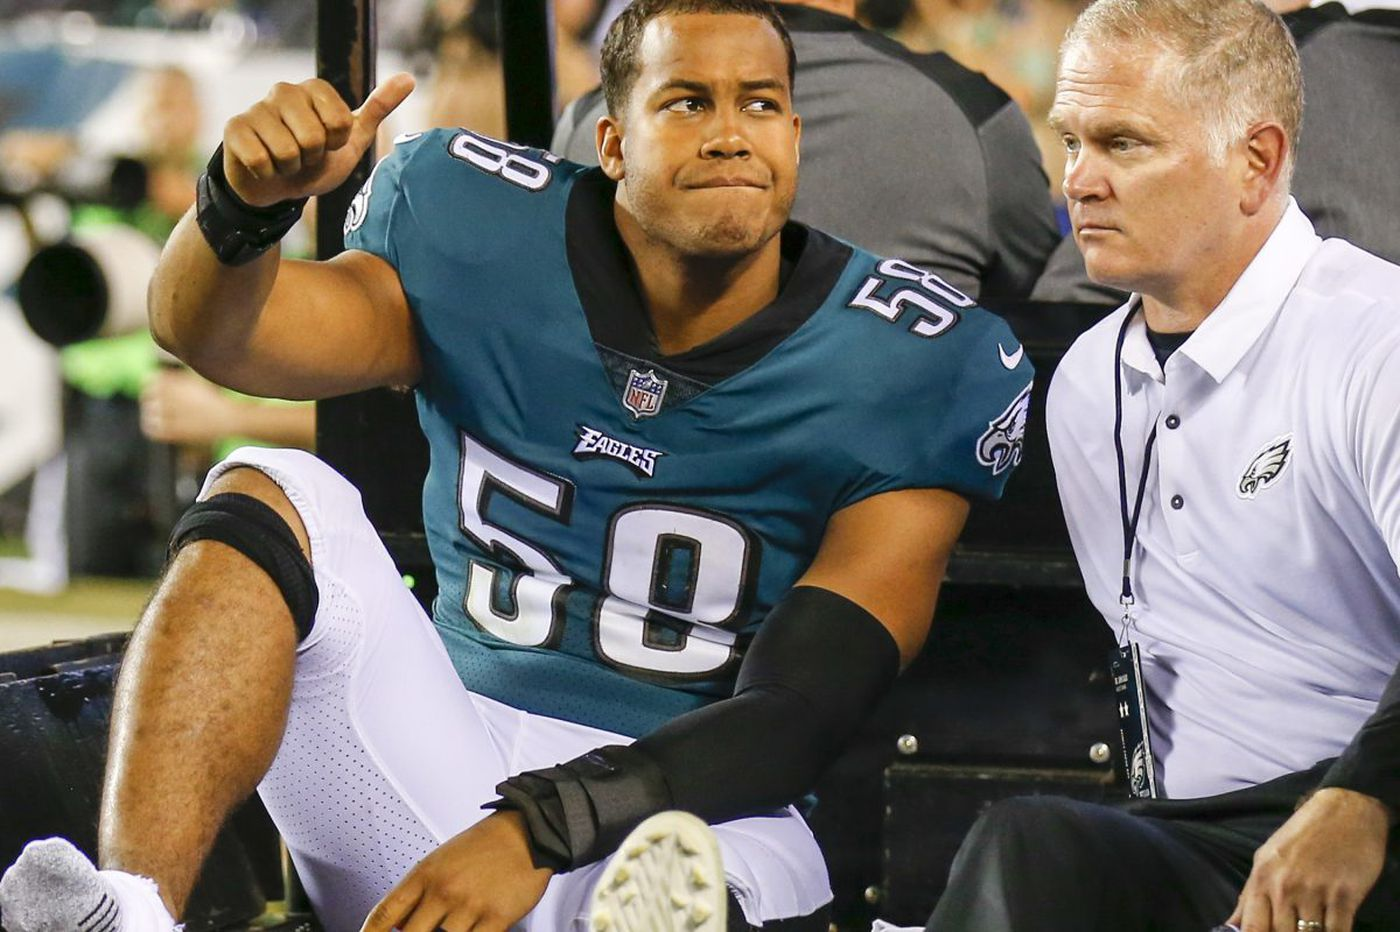 Missing Eagles' playoff run adds insult to injury for Jordan Hicks, other sidelined players